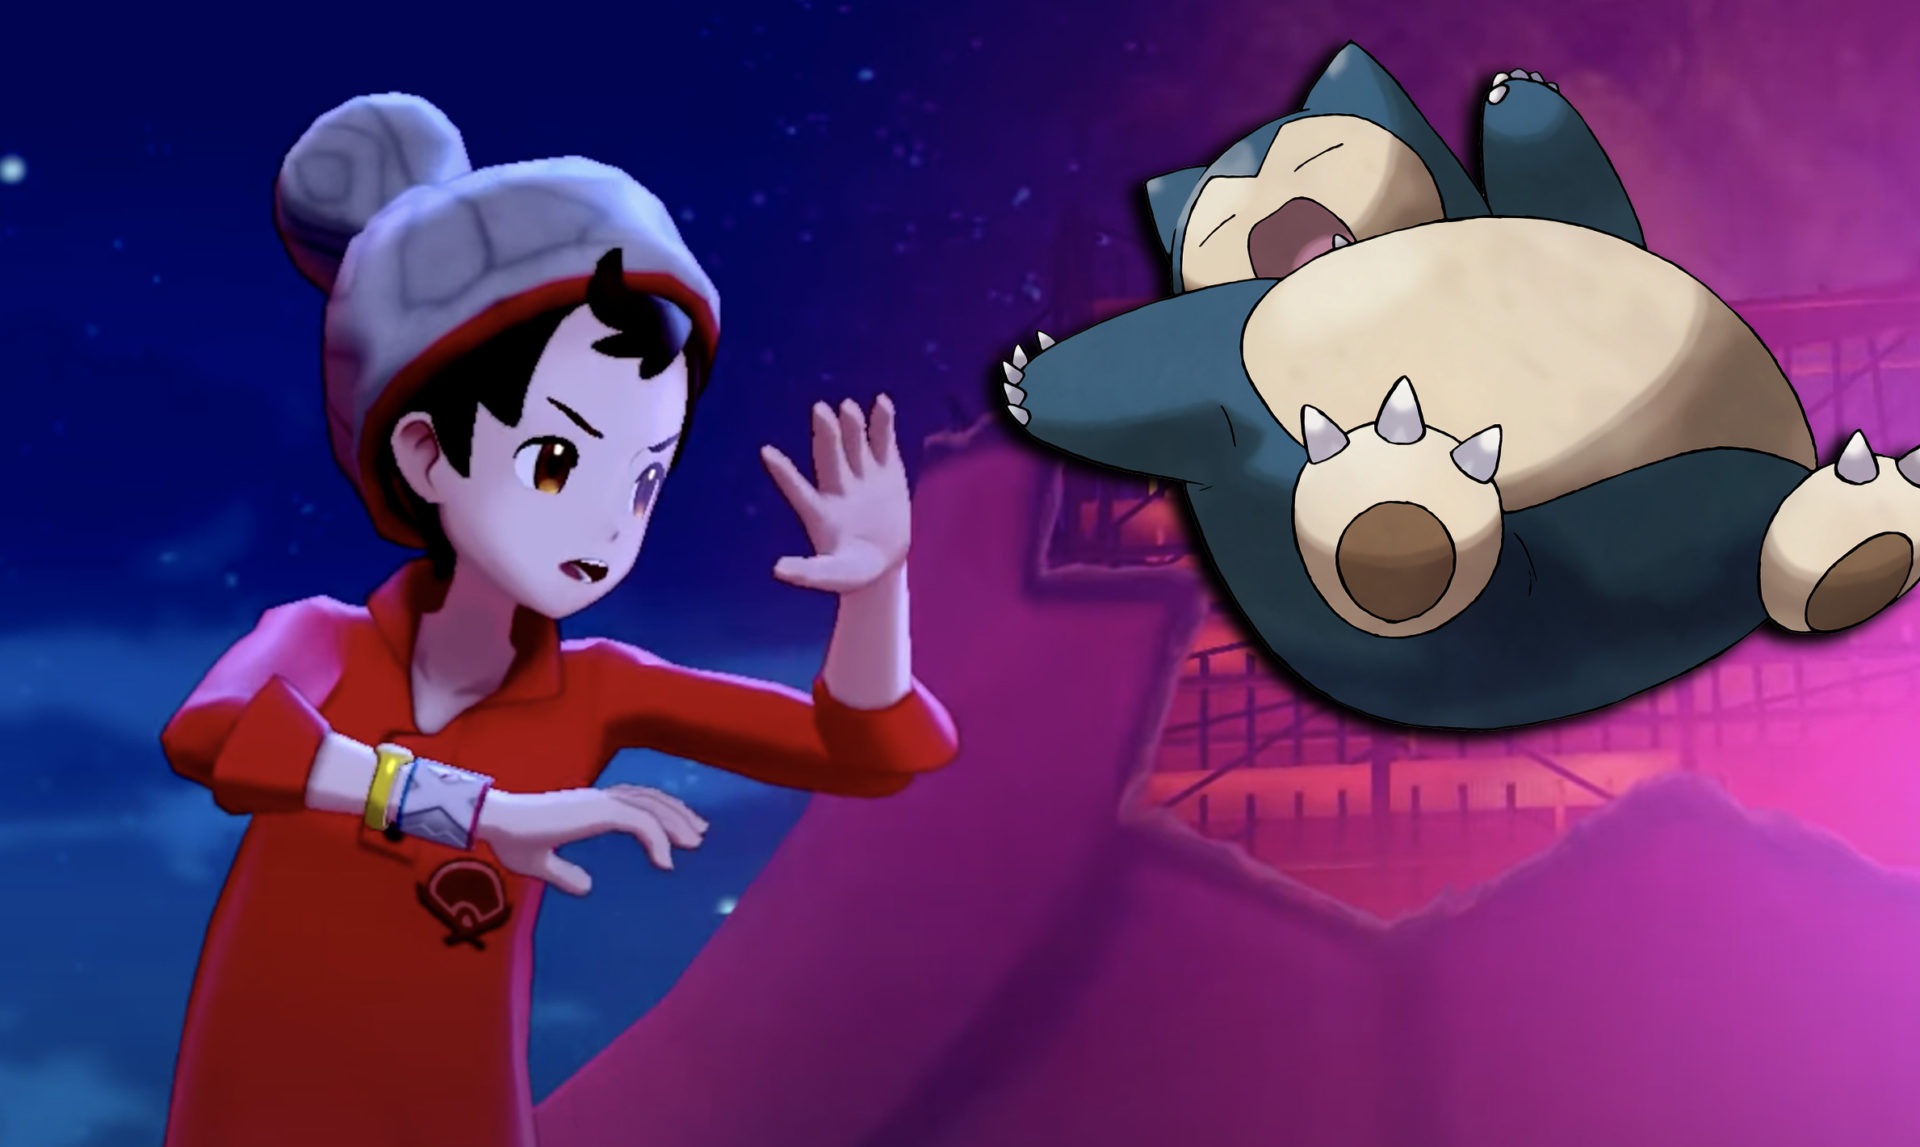 Screenshot from Pokemon Sword & Shield with flying Snorlax.